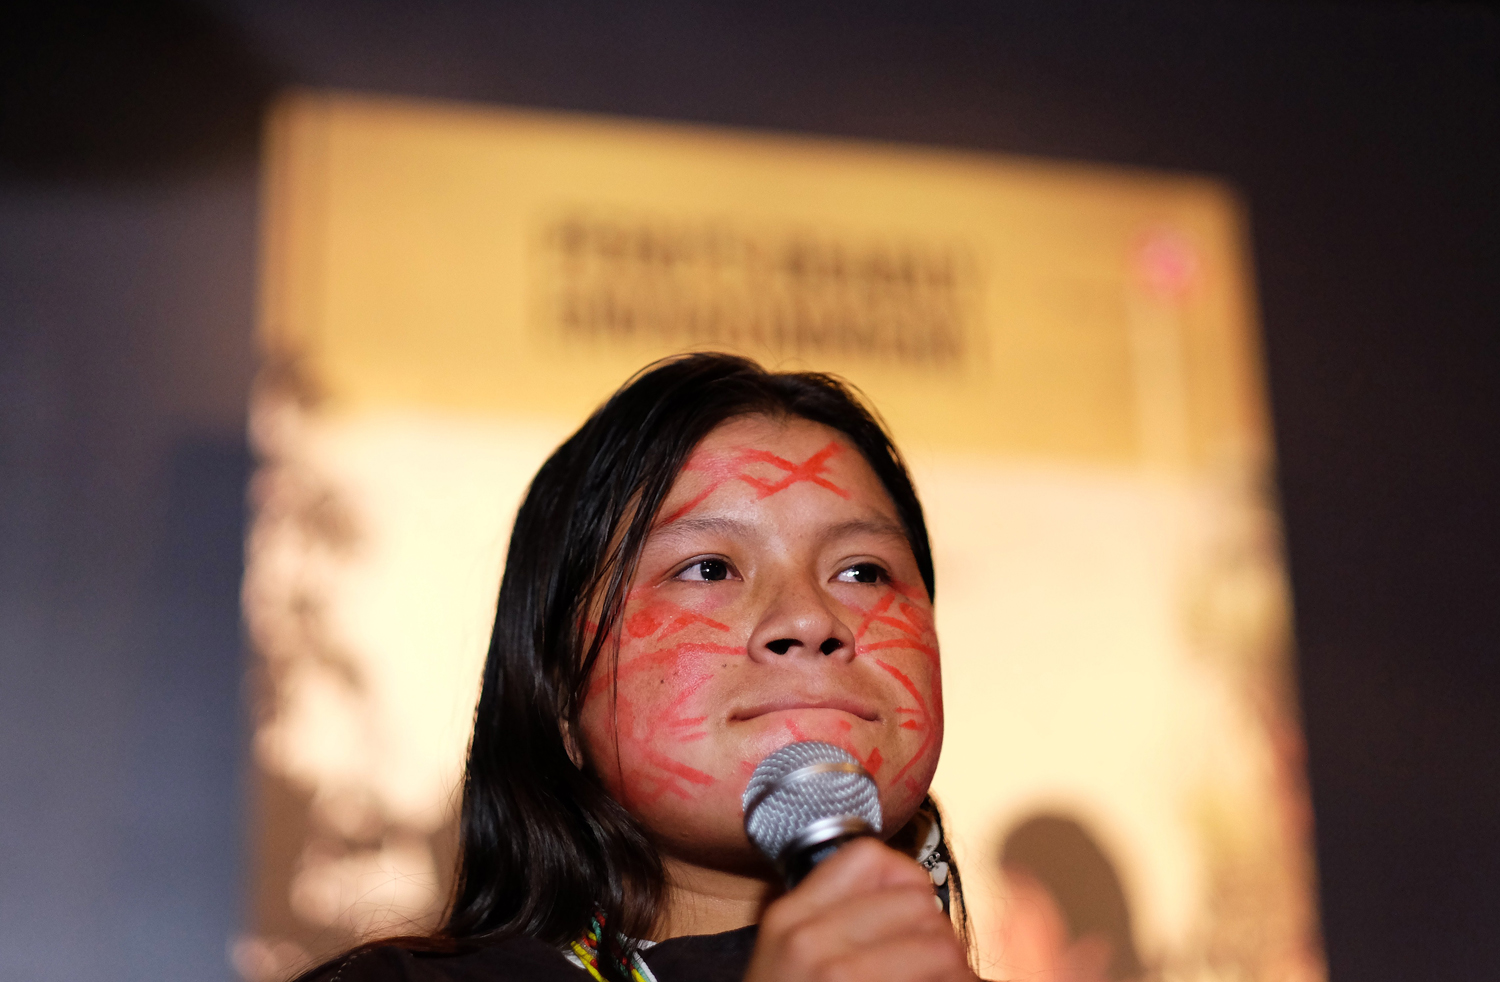 Diana Rios Rengifo, the daughter of one of the four indigenous Ashéninka leaders murdered in the Peruvian Amazon in early September, speaks during a ceremony in New York on Nov. 17, 2014